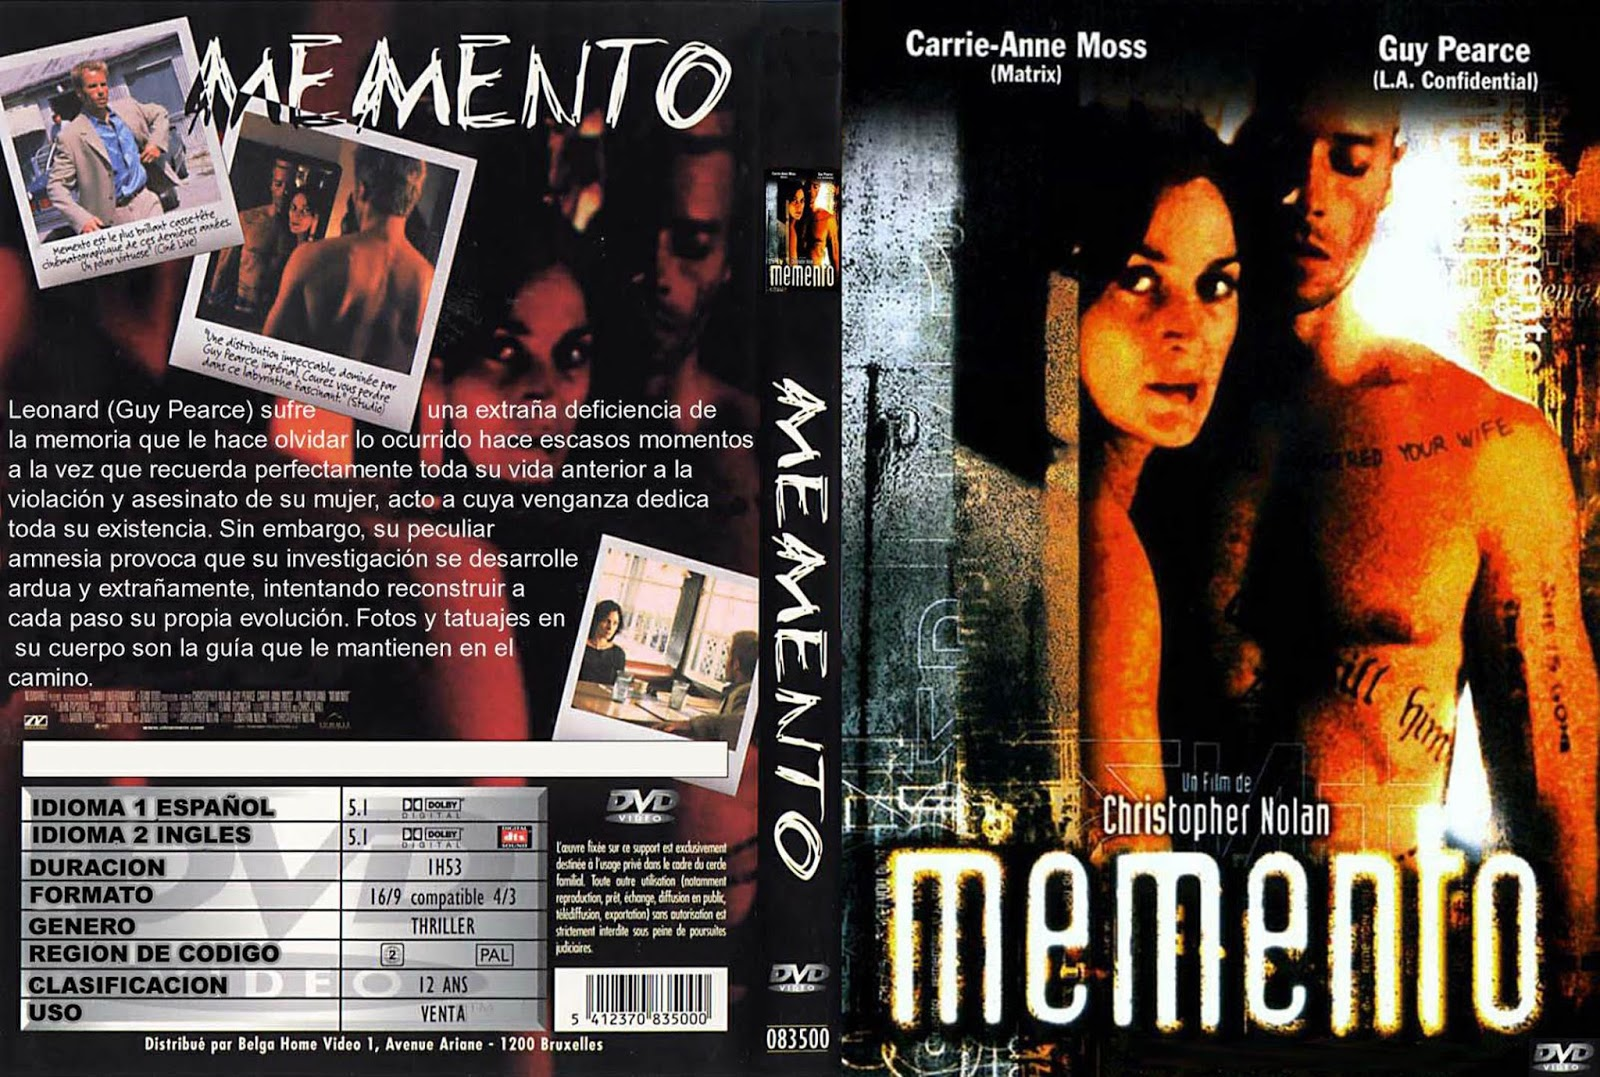 memento Memento private server the memento private server is available for a 30-day evaluation customers are encouraged to fully evaluate the software prior to purchasing a software license.